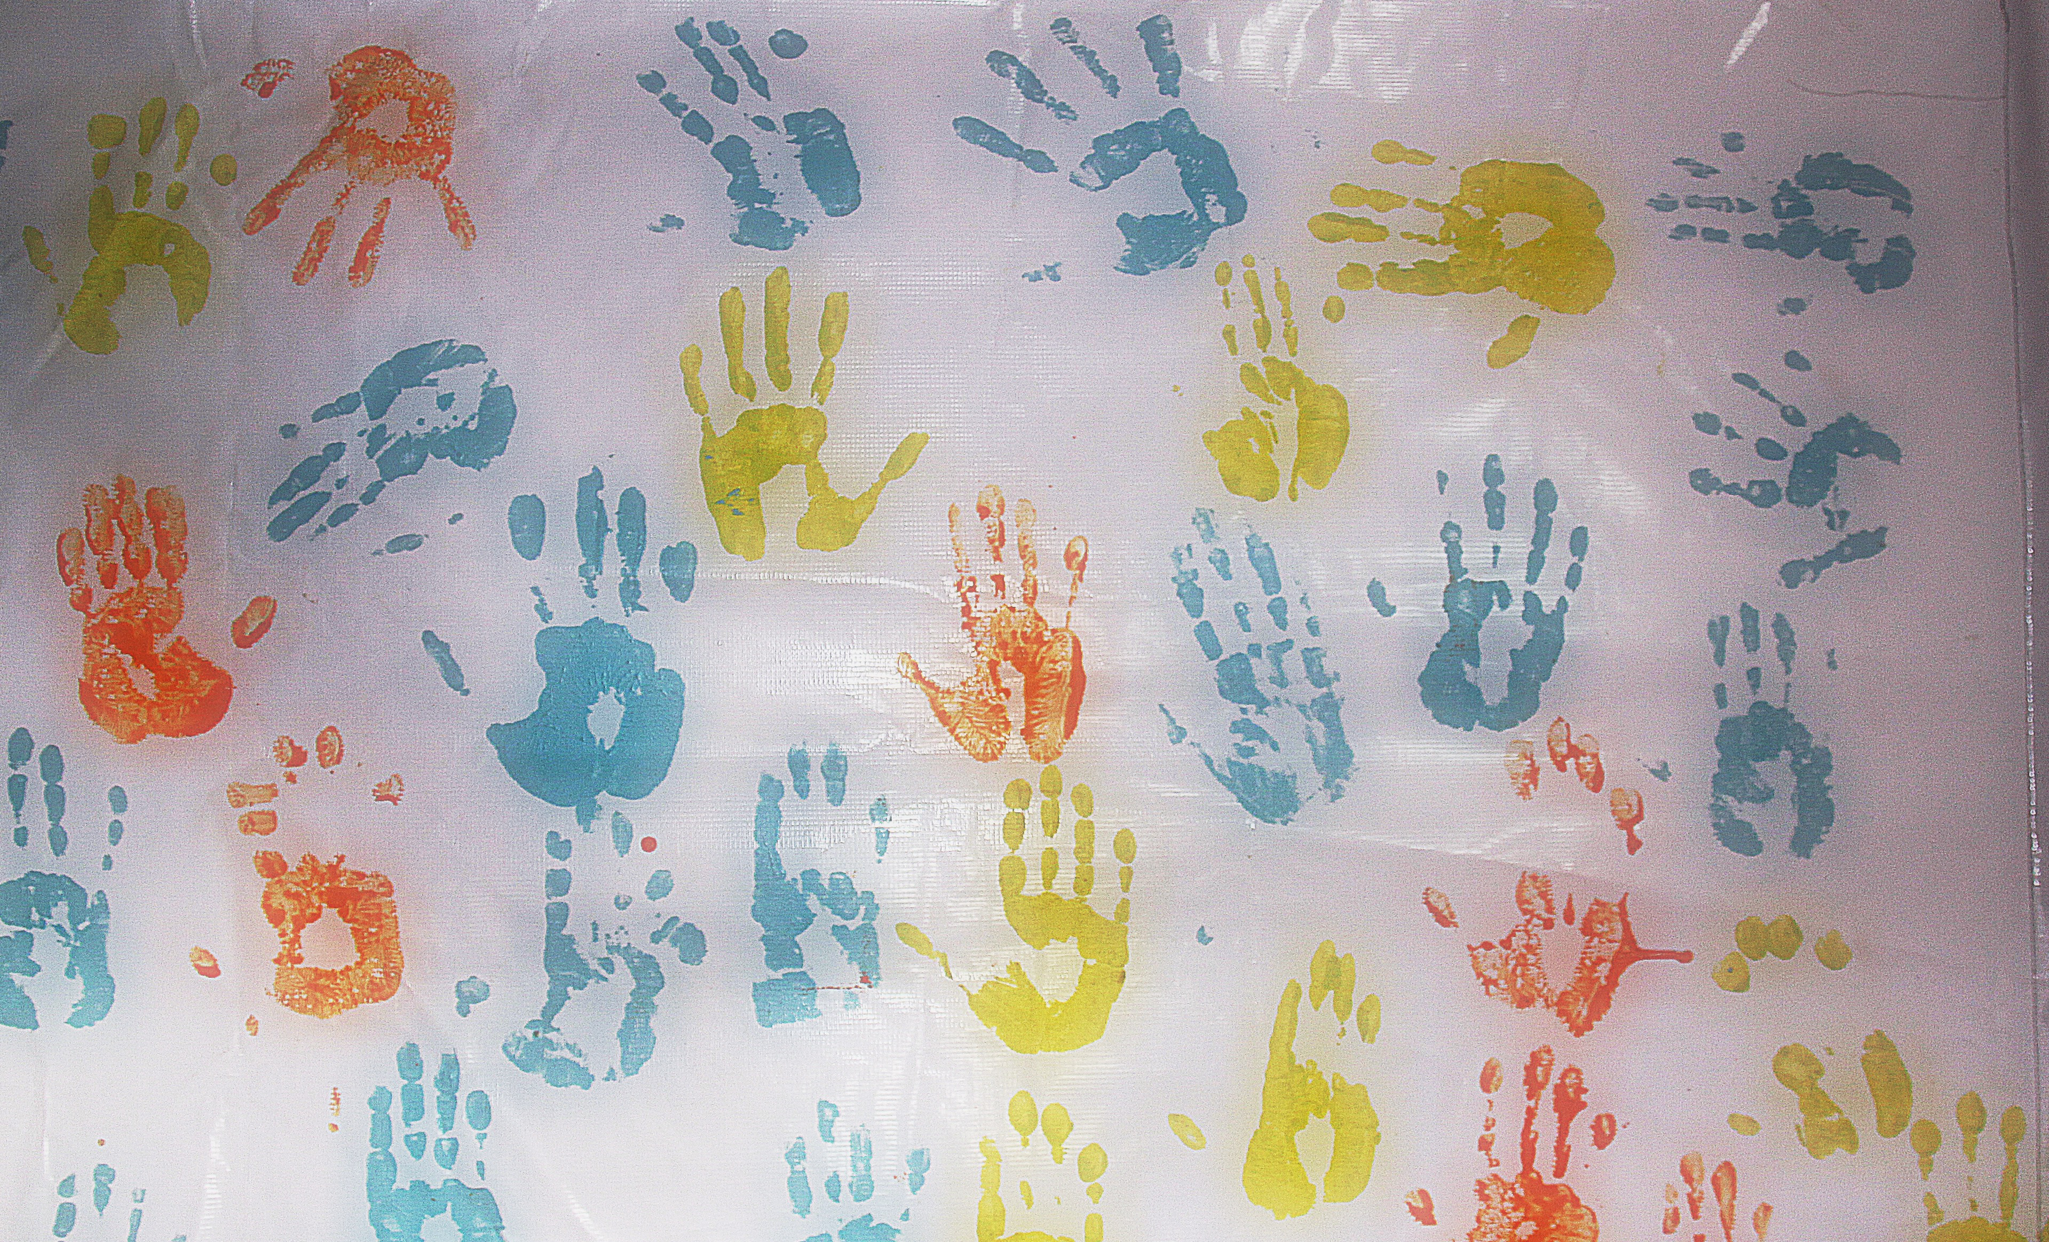 Handprints made during dissemination project.